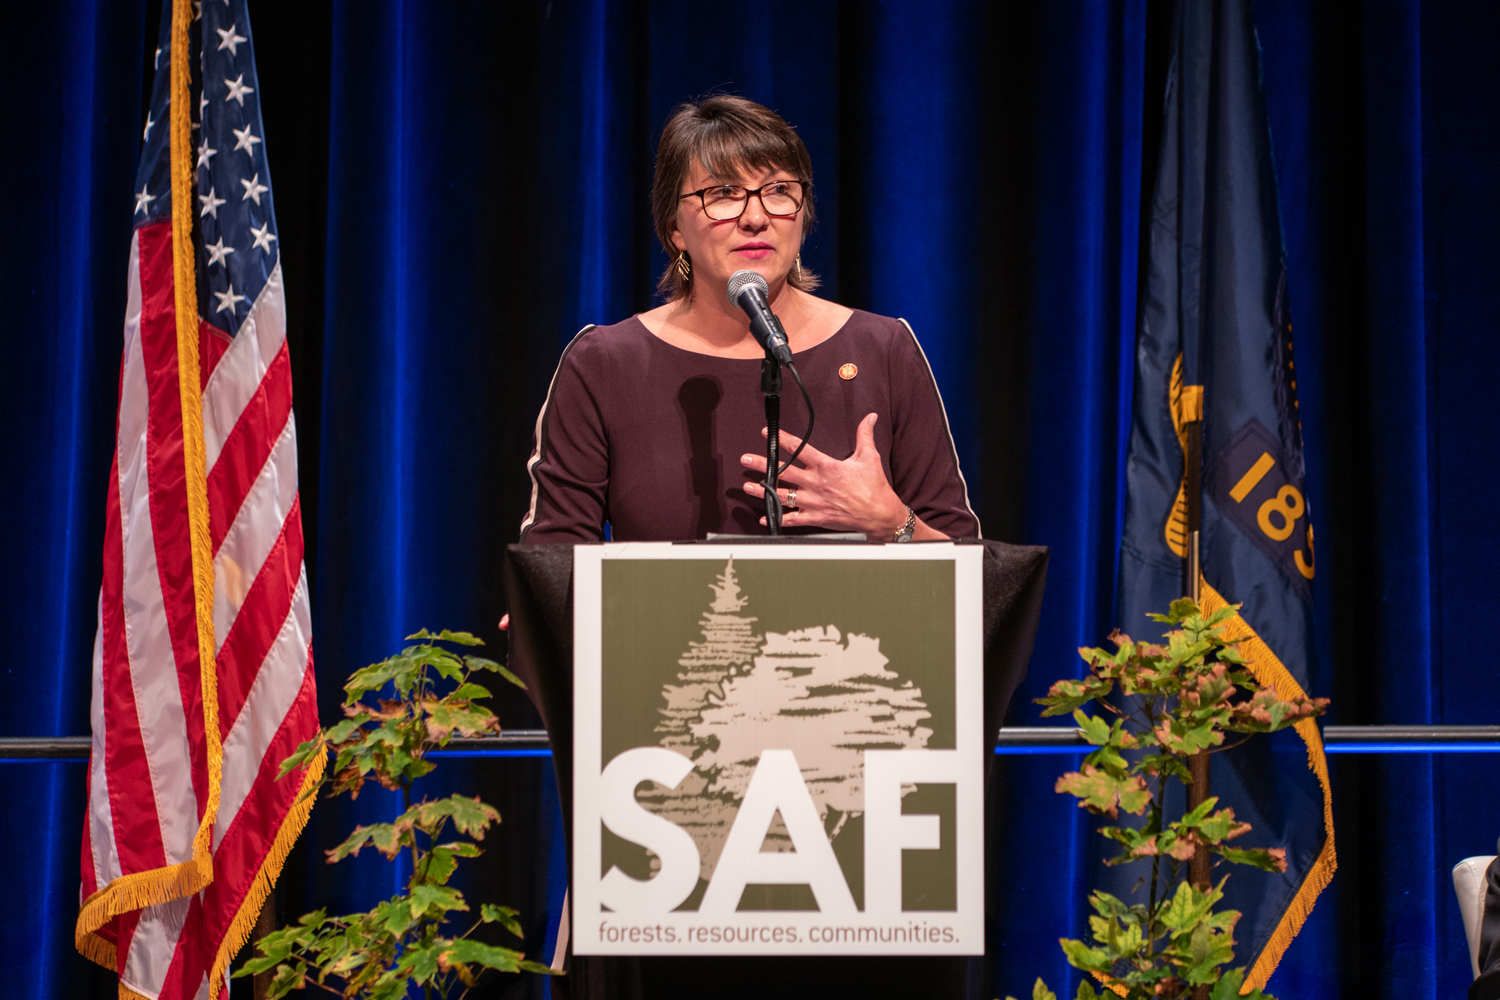 Wasim Muklashy Photography_-SAM_5452_Society of American Foresters National Convention_585_World Forestry Center Leadership Hall Induction_Allyn Ford135_Society of American Foresters Convention 2018_610.jpg